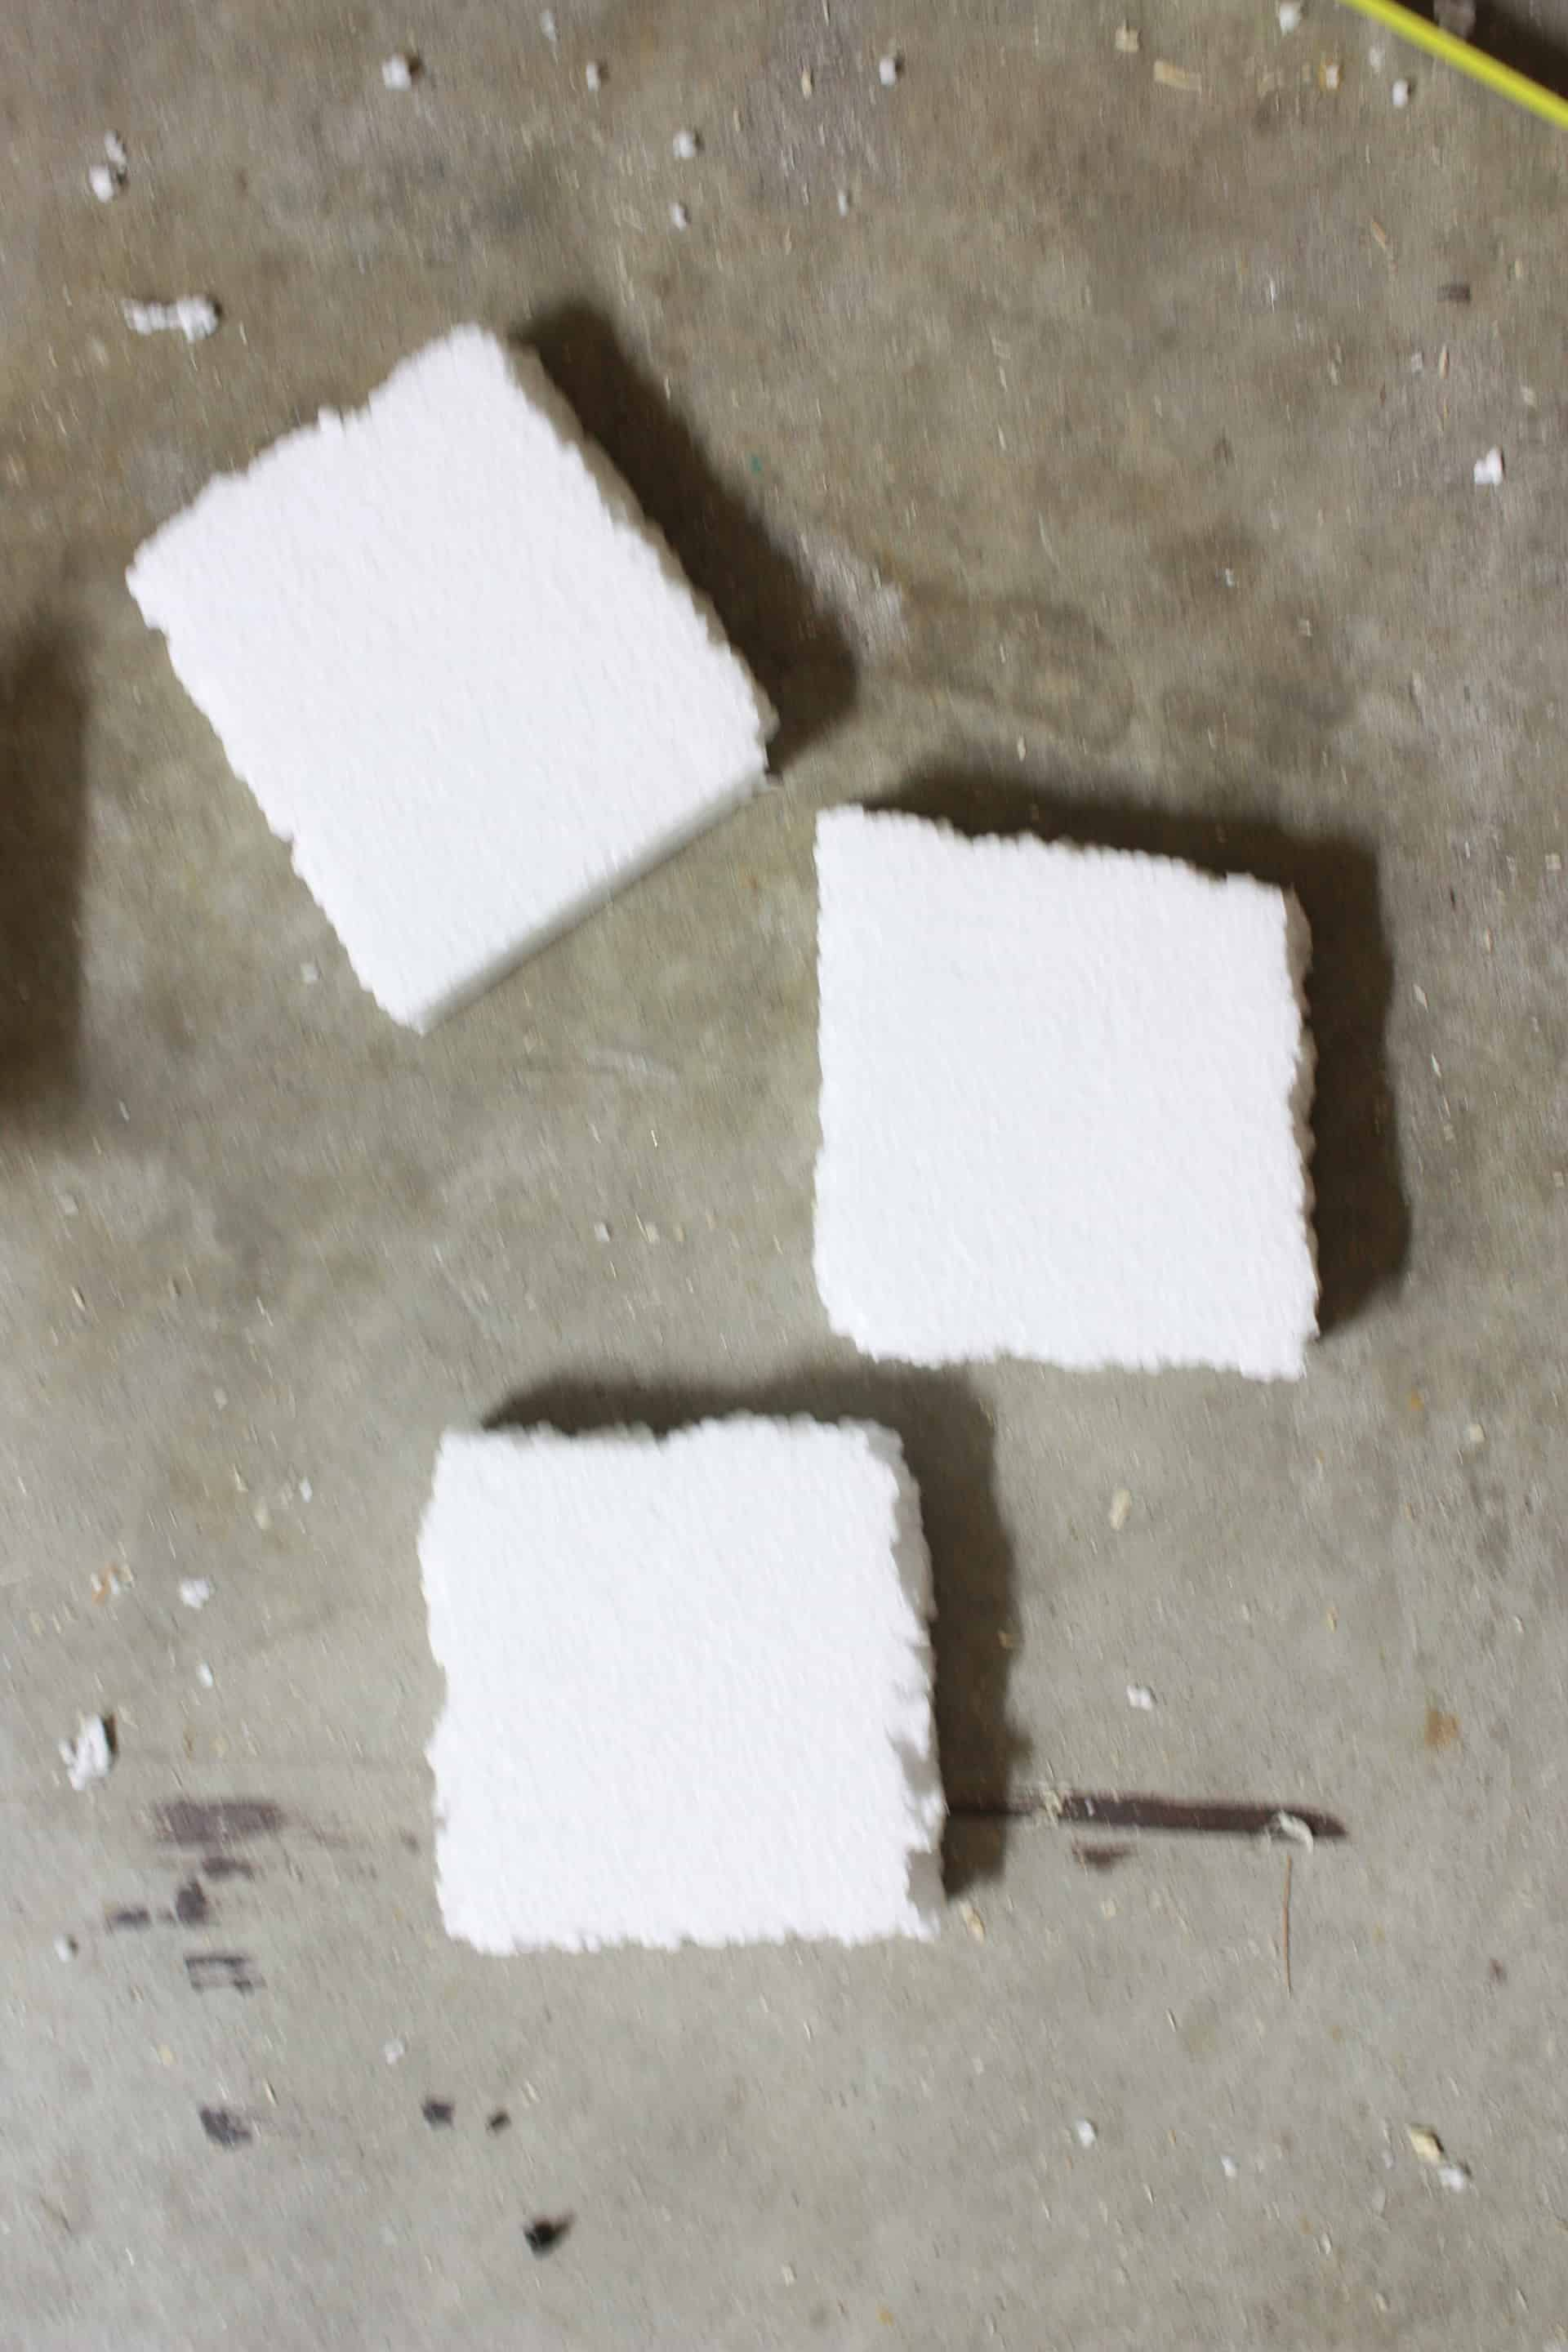 styrofoam for the wooden vases cut to size